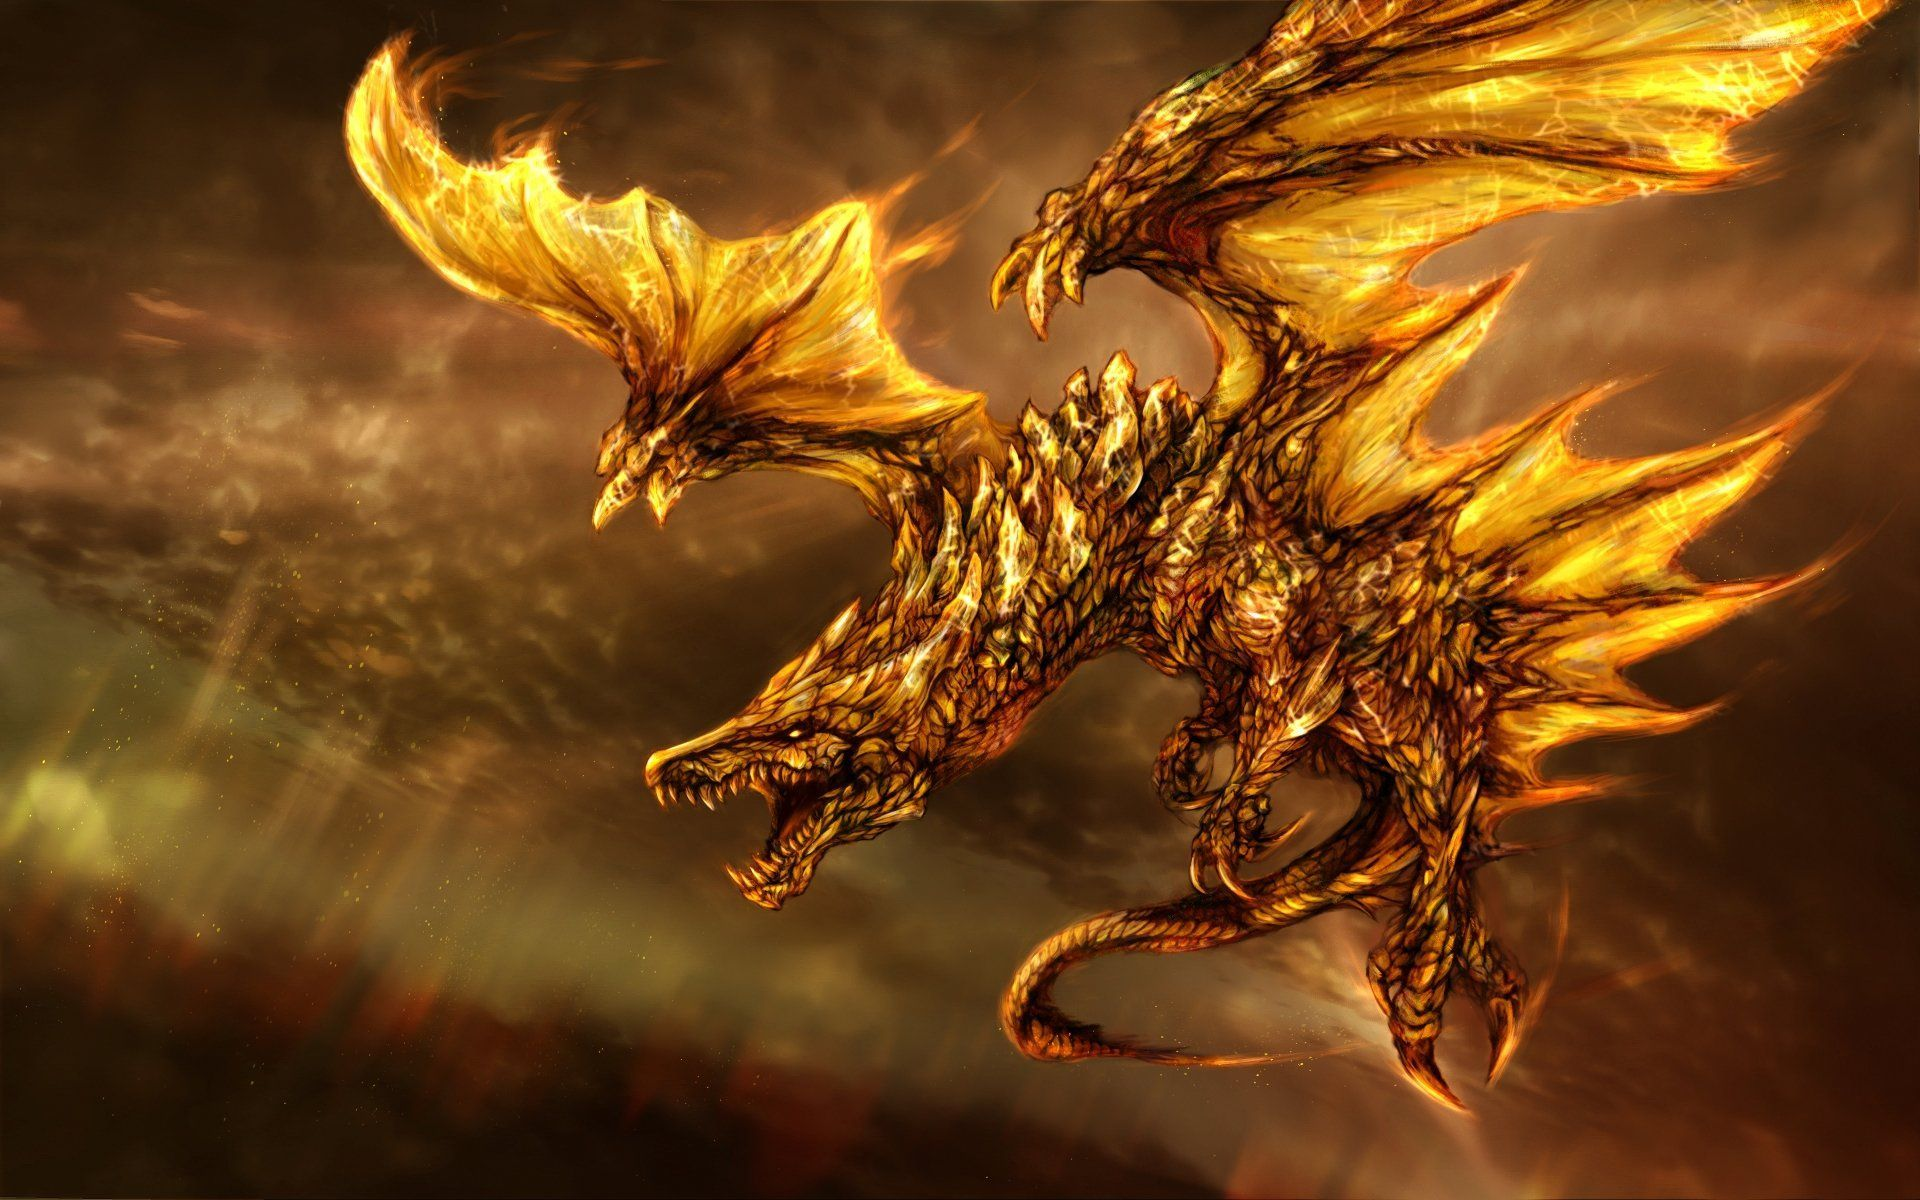 Black And Gold Dragon Wallpapers Top Free Black And Gold Dragon